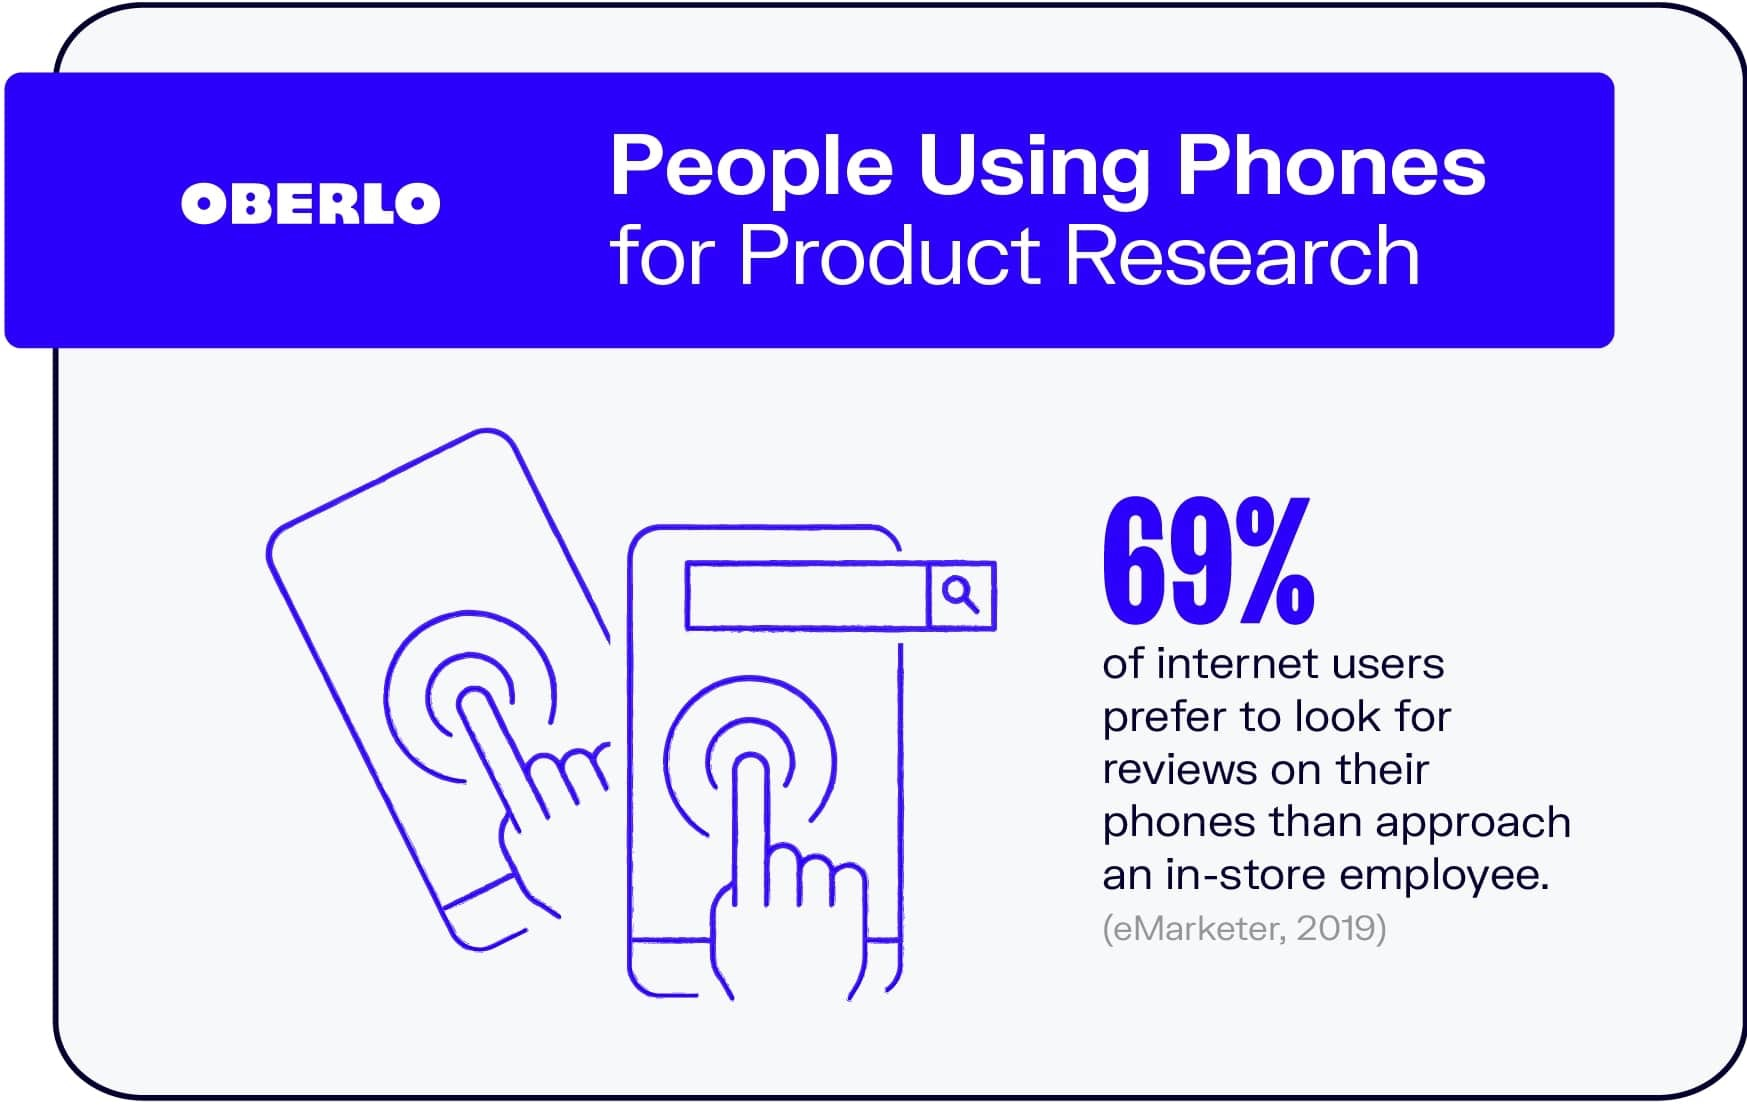 People Using Phones for Product Research